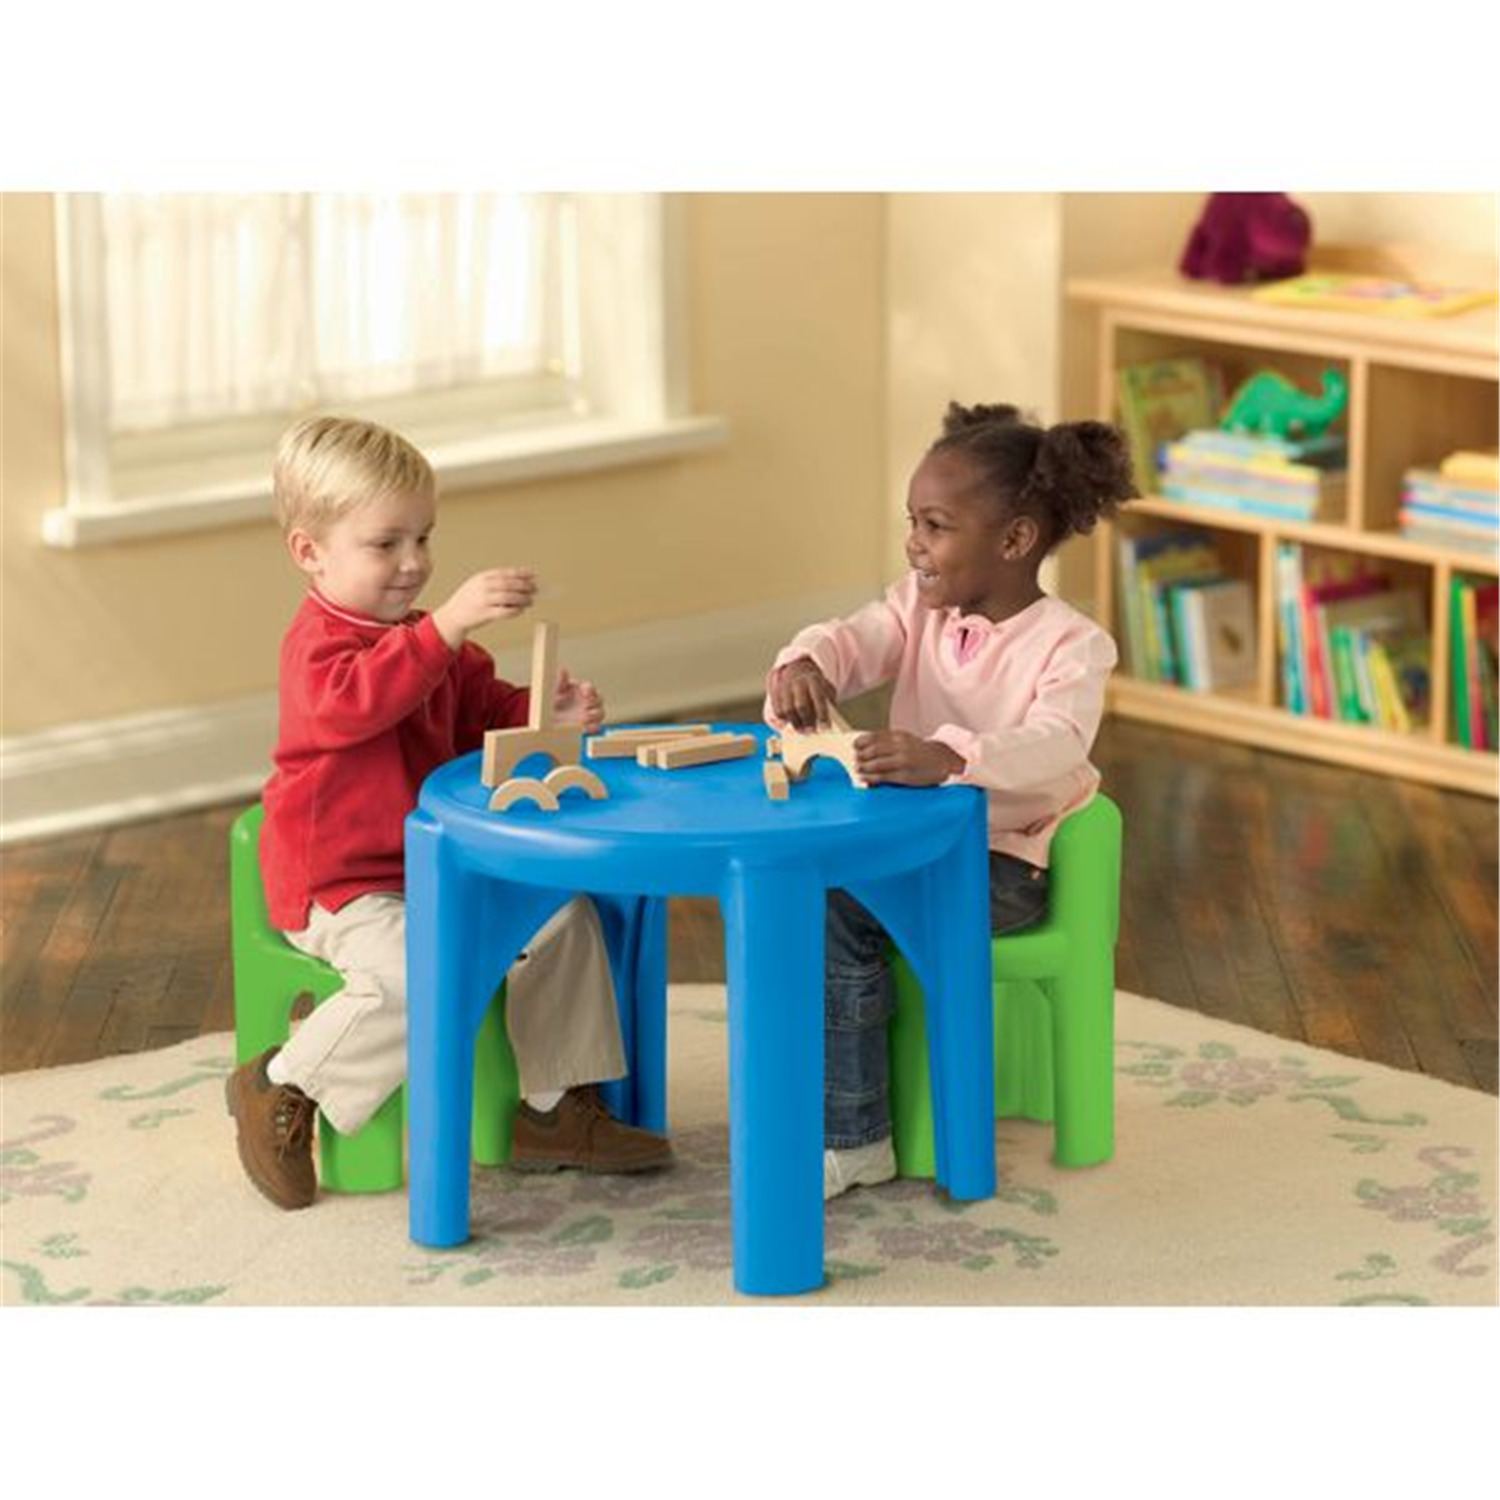 Little tikes bright n bold table amp chairs by oj commerce 621048